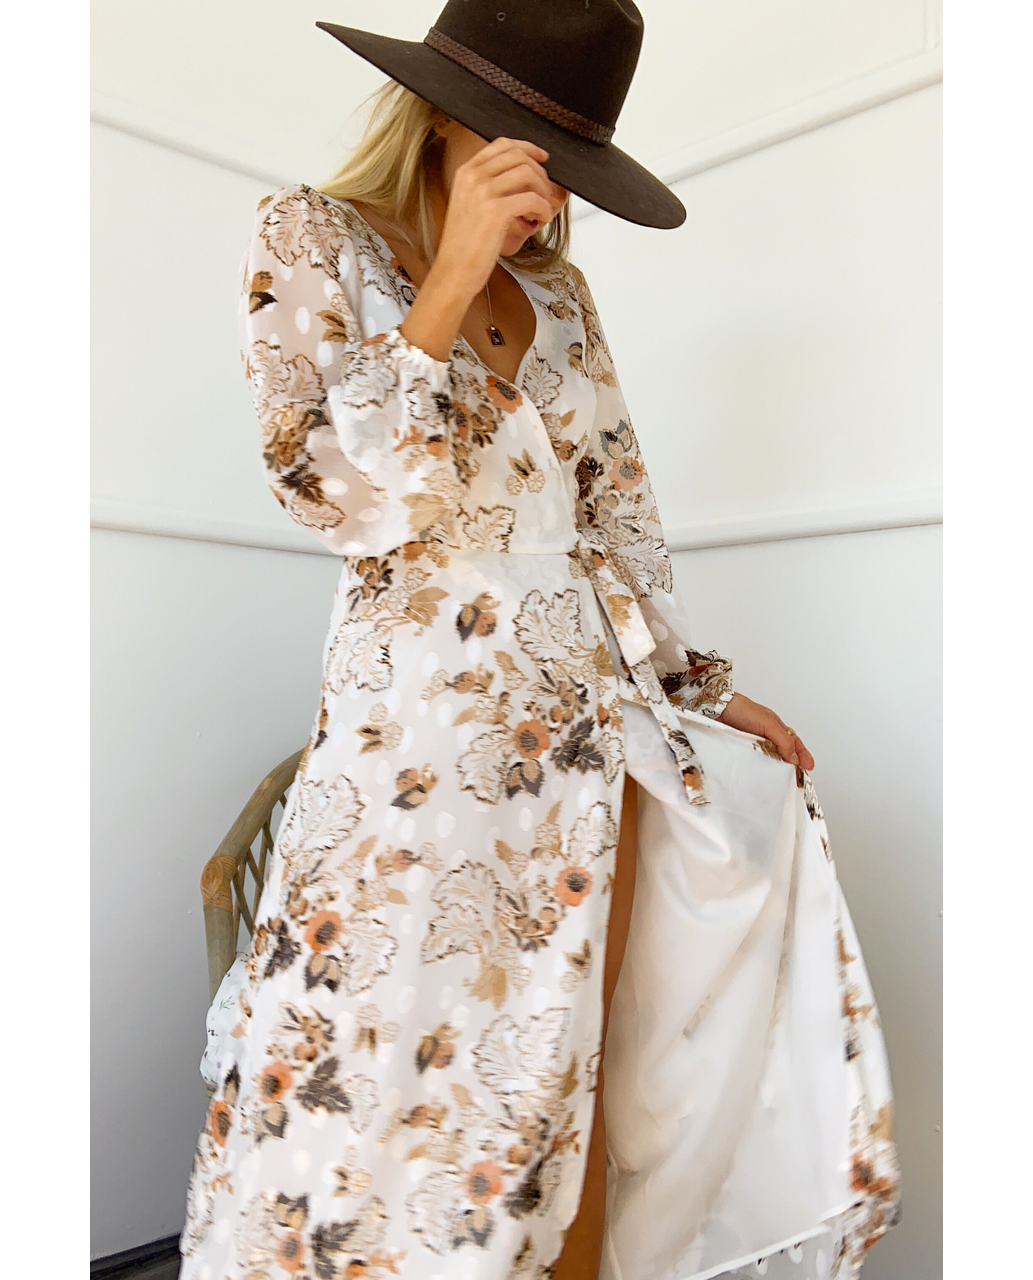 RUNAWAY THE LABEL HALENNE DRESS IN WHITE FLORAL